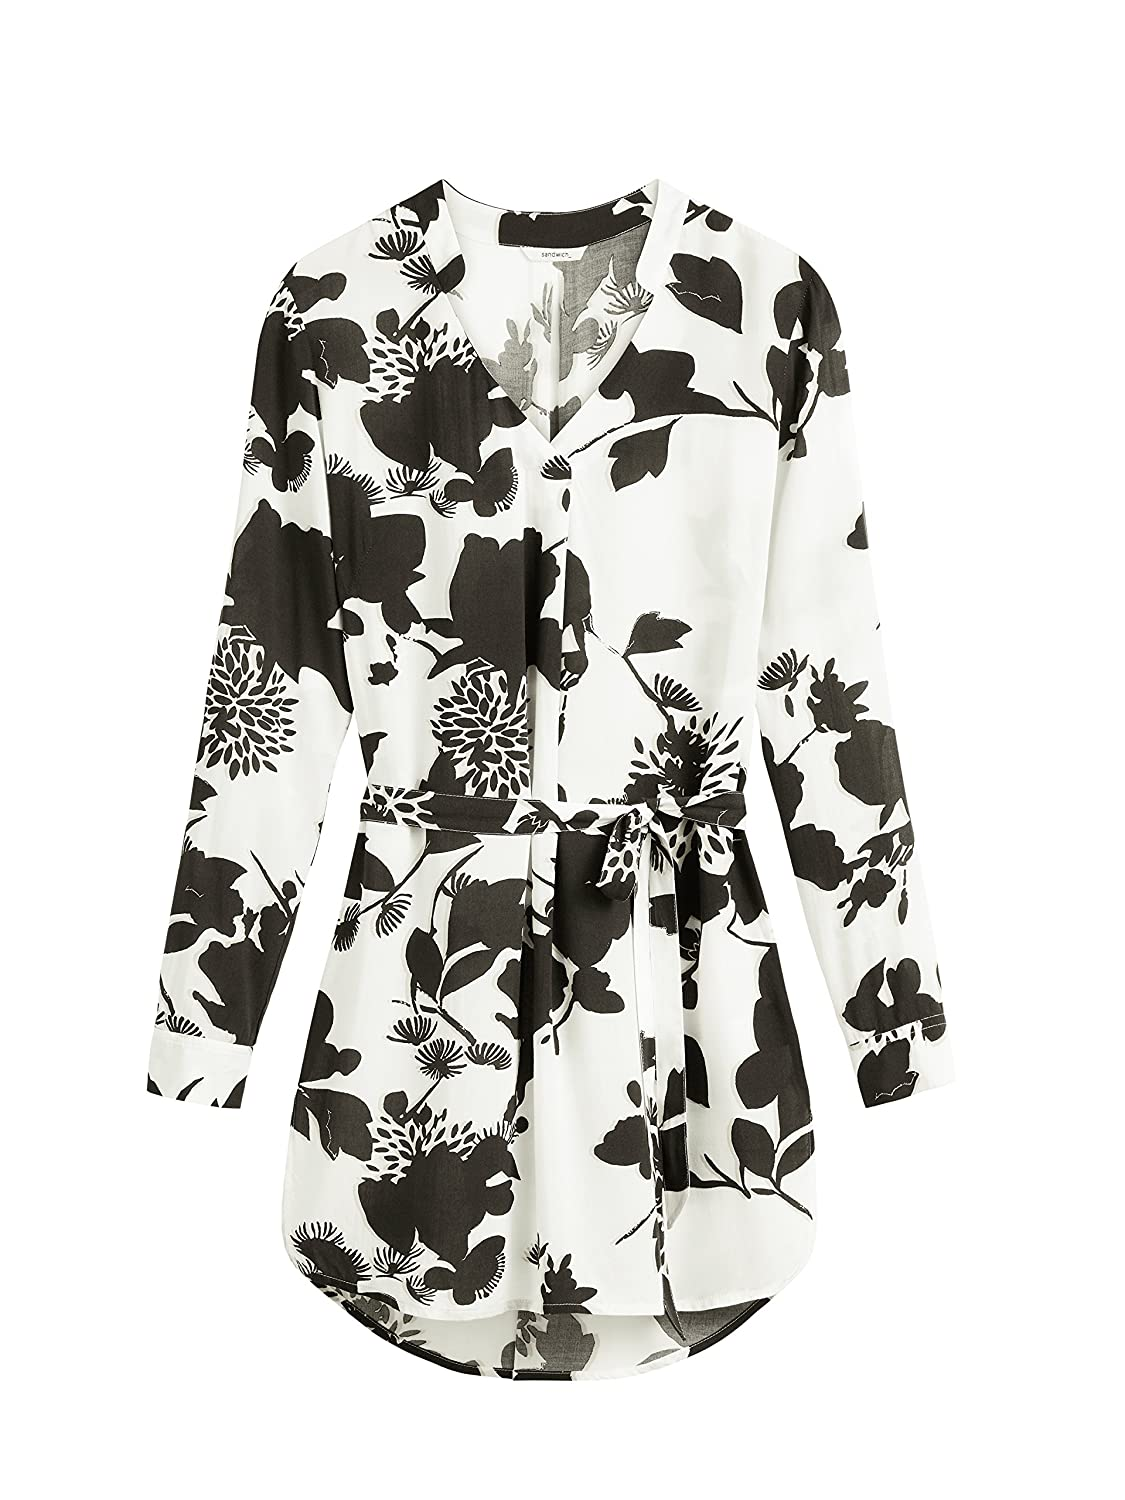 Sandwich Clothing Floral Silhouette Long Blouse, Almost Black:  Amazon.co.uk: Clothing